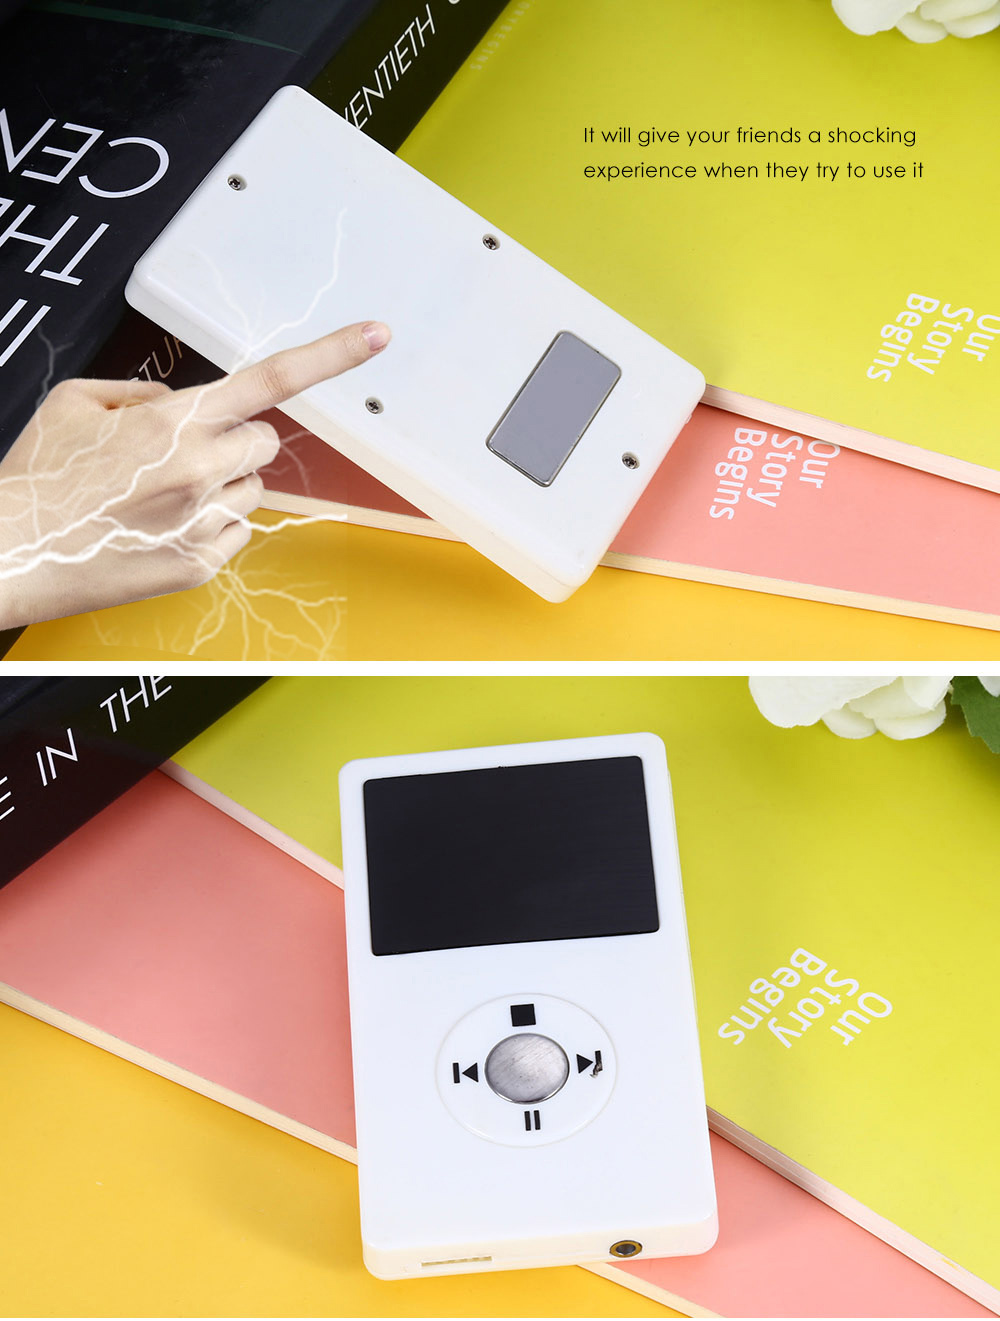 Practical Mischievous Shocking MP3 Style Electronic Toy for Entertainment